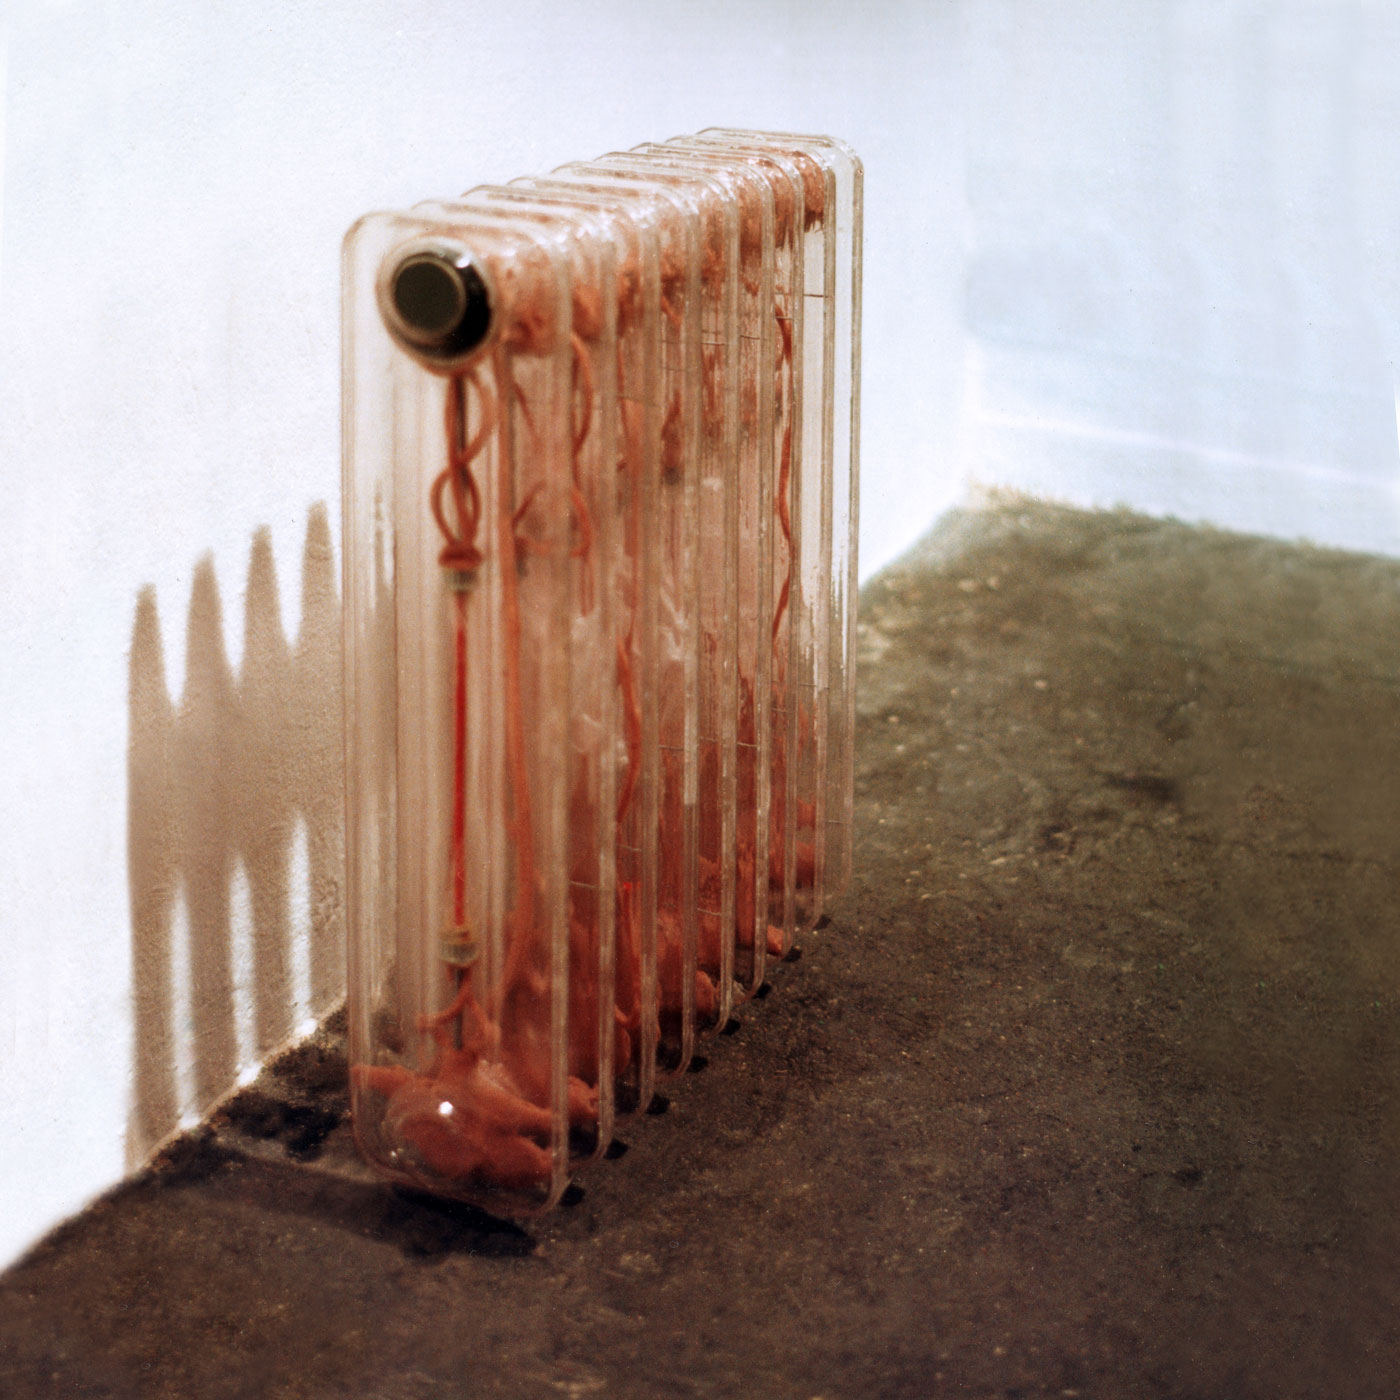 FREEZING RADIATOR, © 1997, acrylic perspex, aluminium, foam, speakers, 70 x 50 x 12 cm